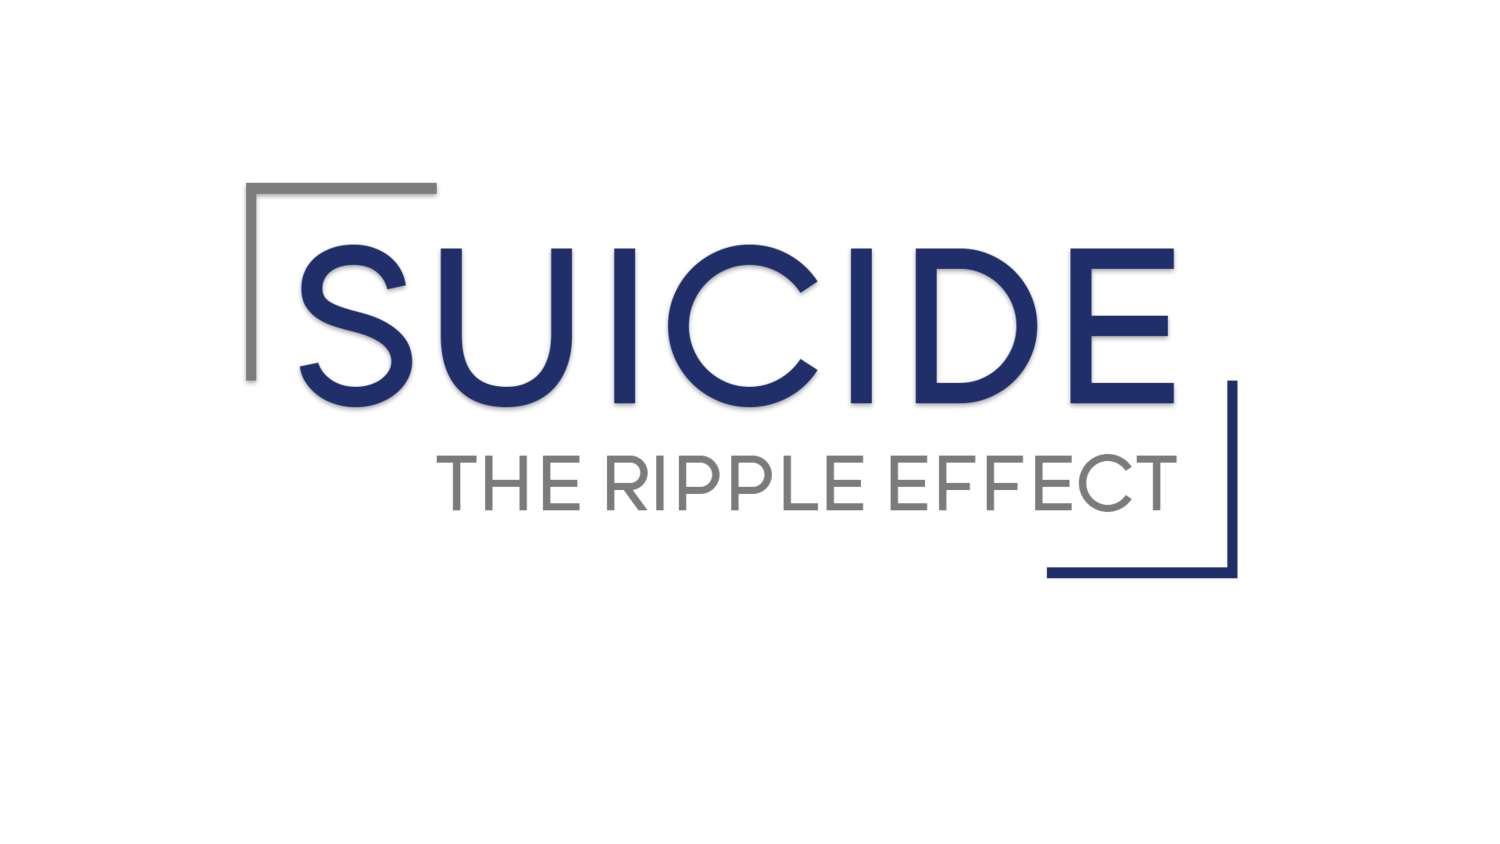 Suicide: The Ripple Effect Film